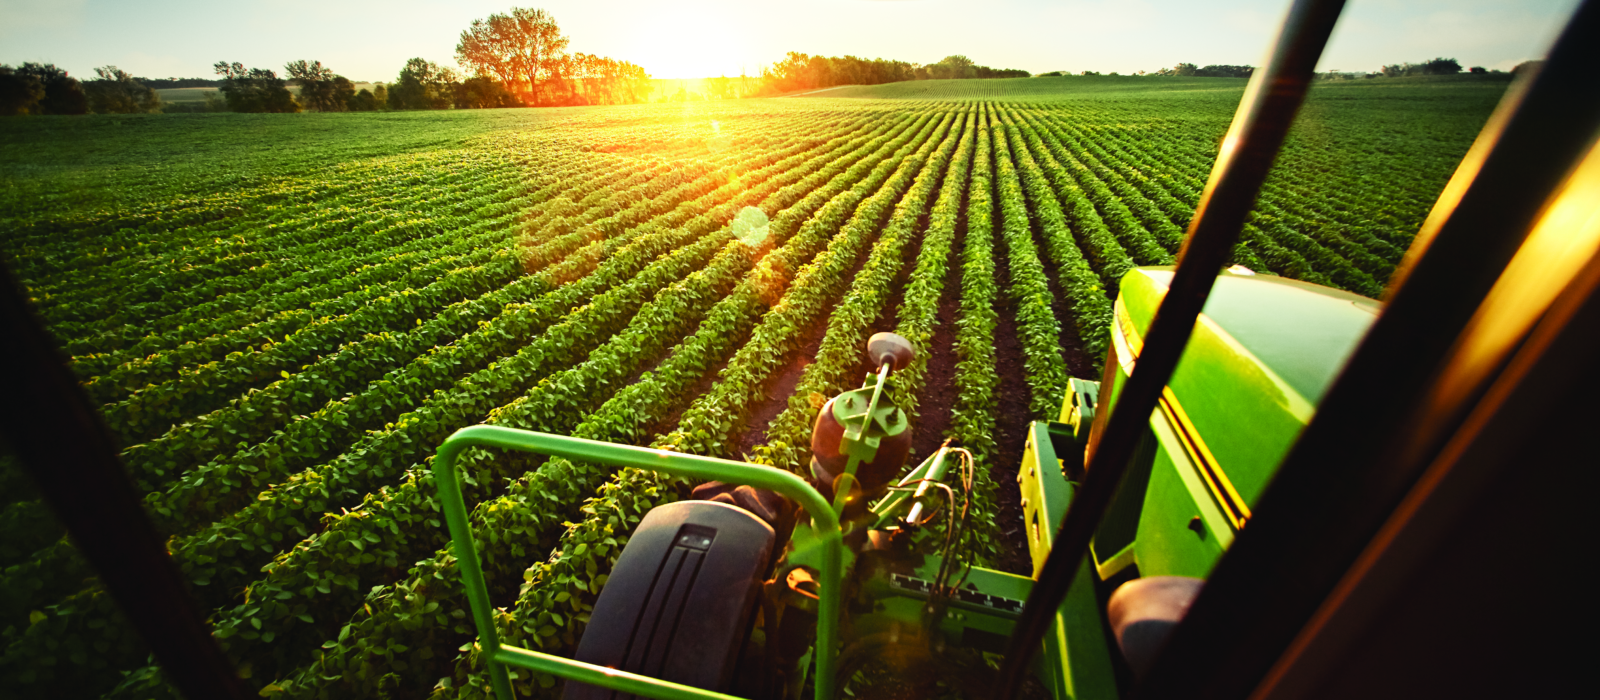 Tractor in field of soybeans at sunset